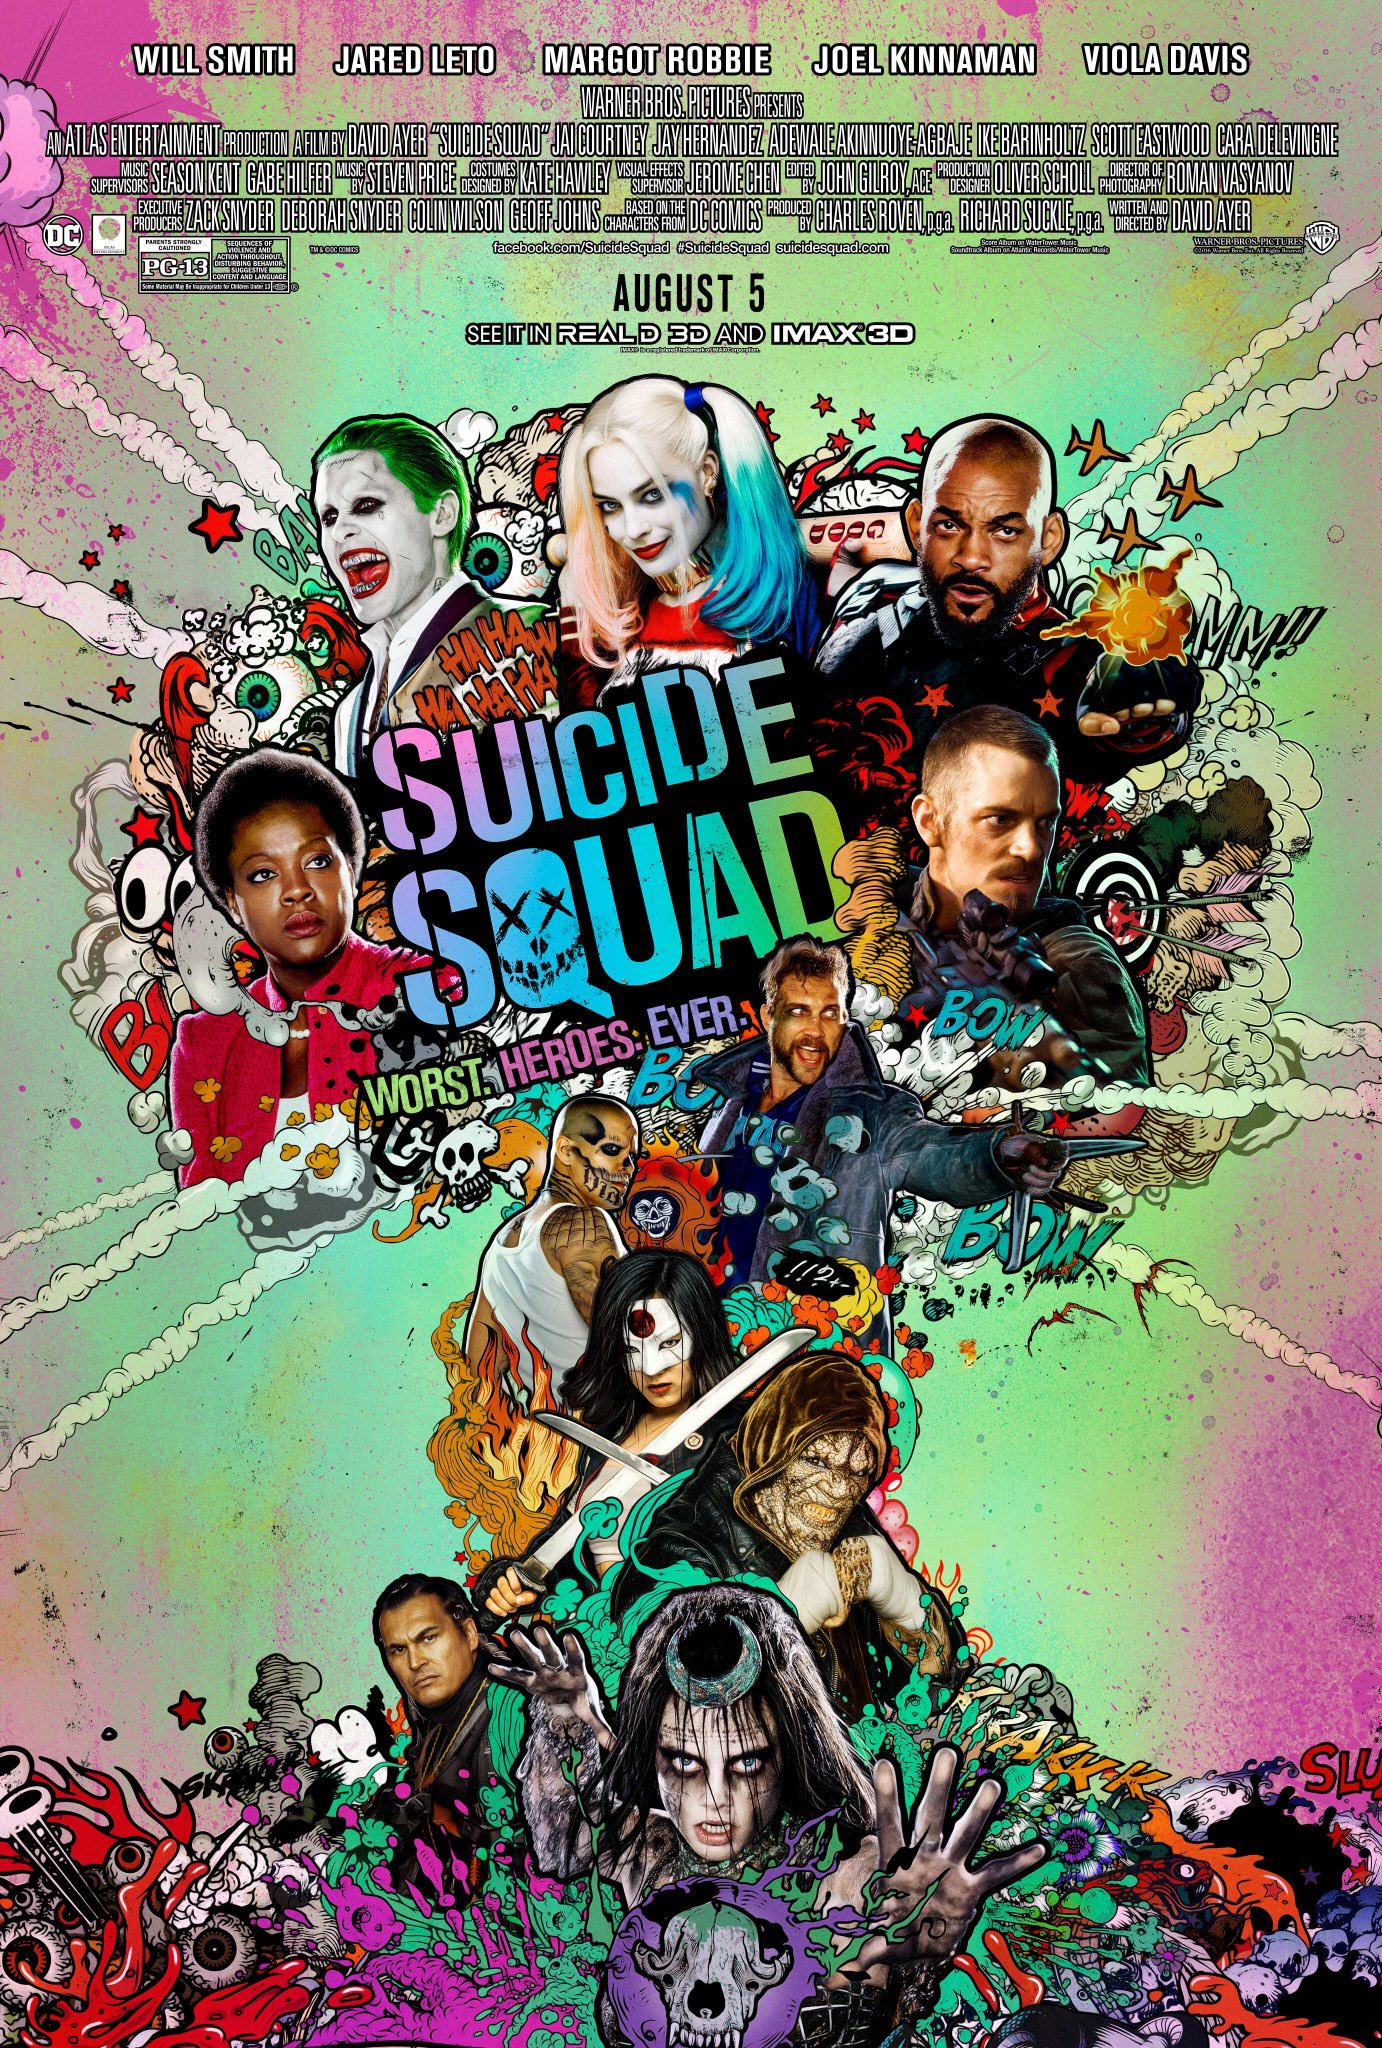 Image result for suicide squad movie poster official